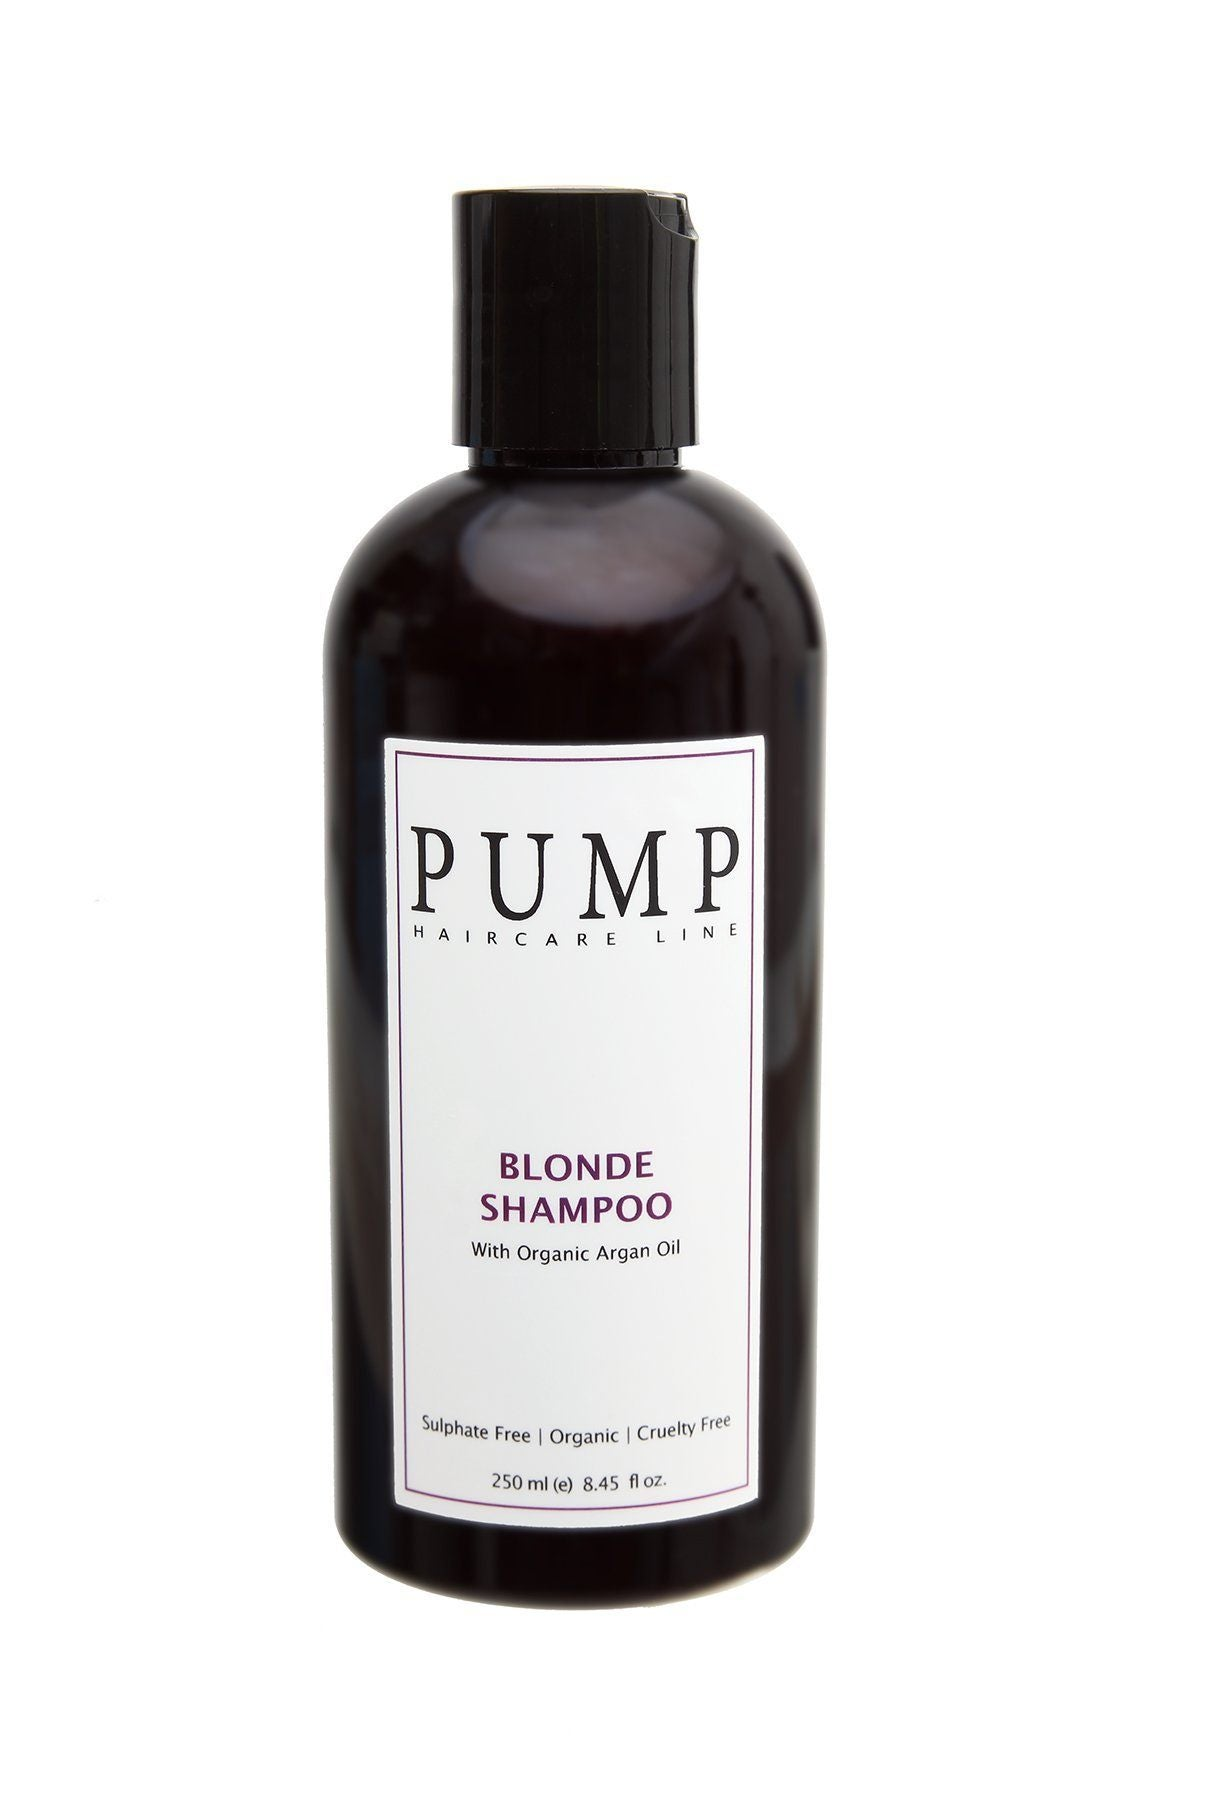 Pump Blonde Shampoo